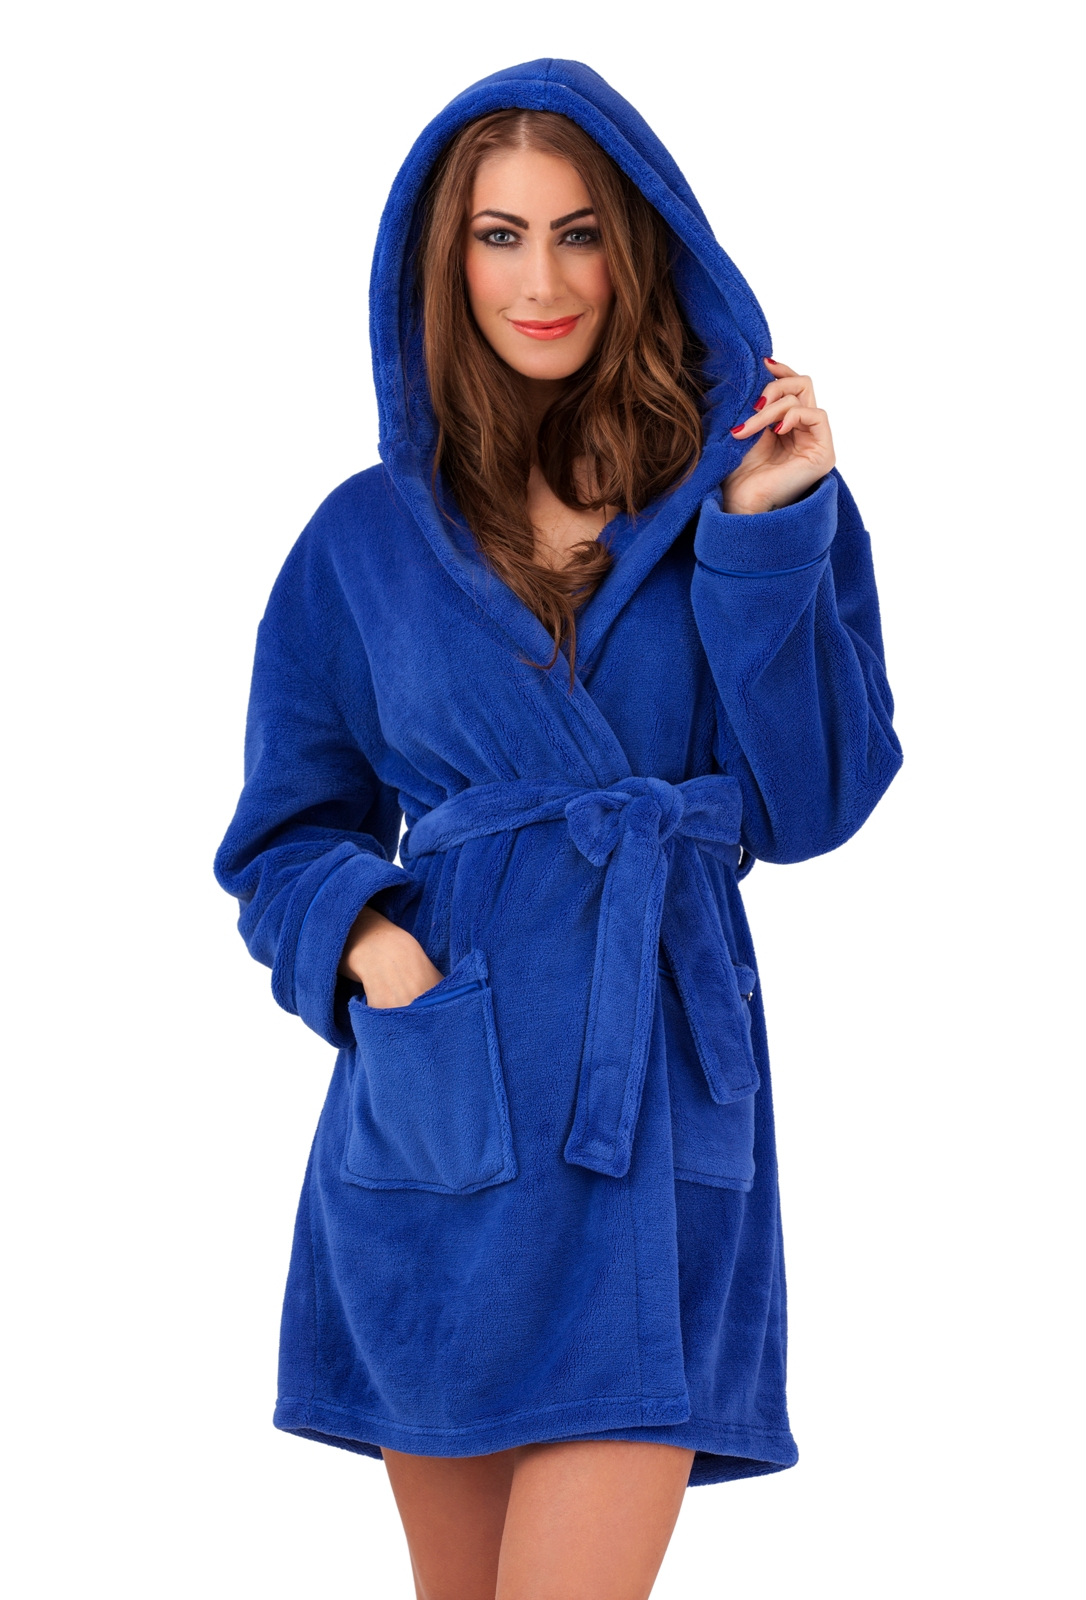 WOMENS HOODED SHORT BATH ROBE DRESSING GOWN HOUSECOAT WITH ...